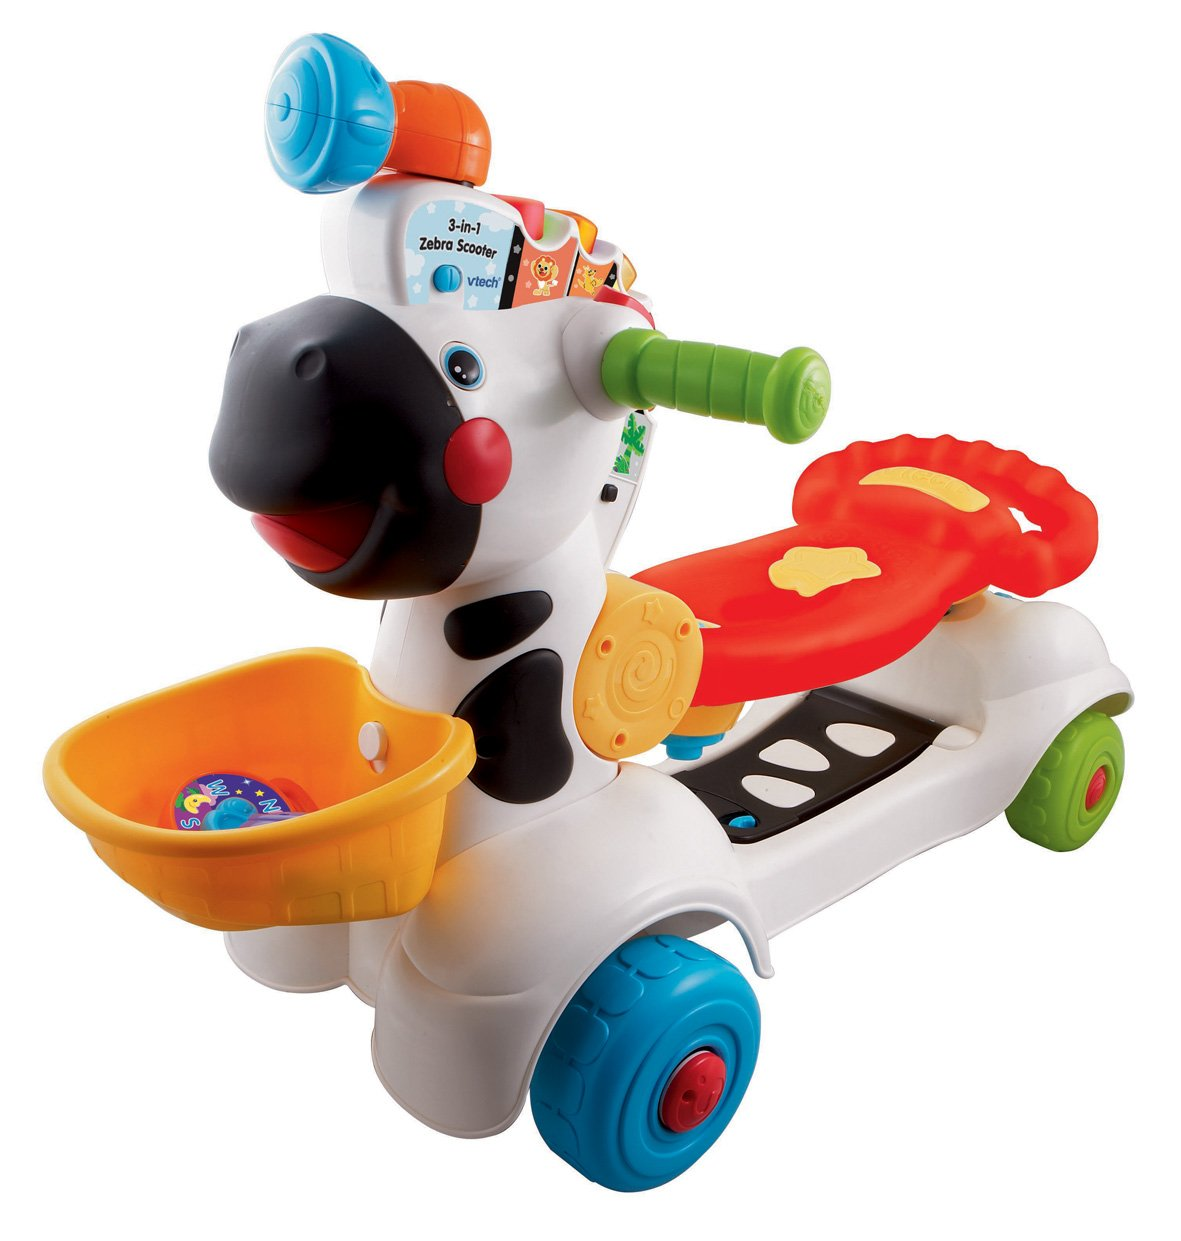 vtech 3 in 1 zebra scooter multi coloured amazon co uk toys games rh amazon co uk Bounce and Spin Zebra Recall Turn and Bounce Zebra